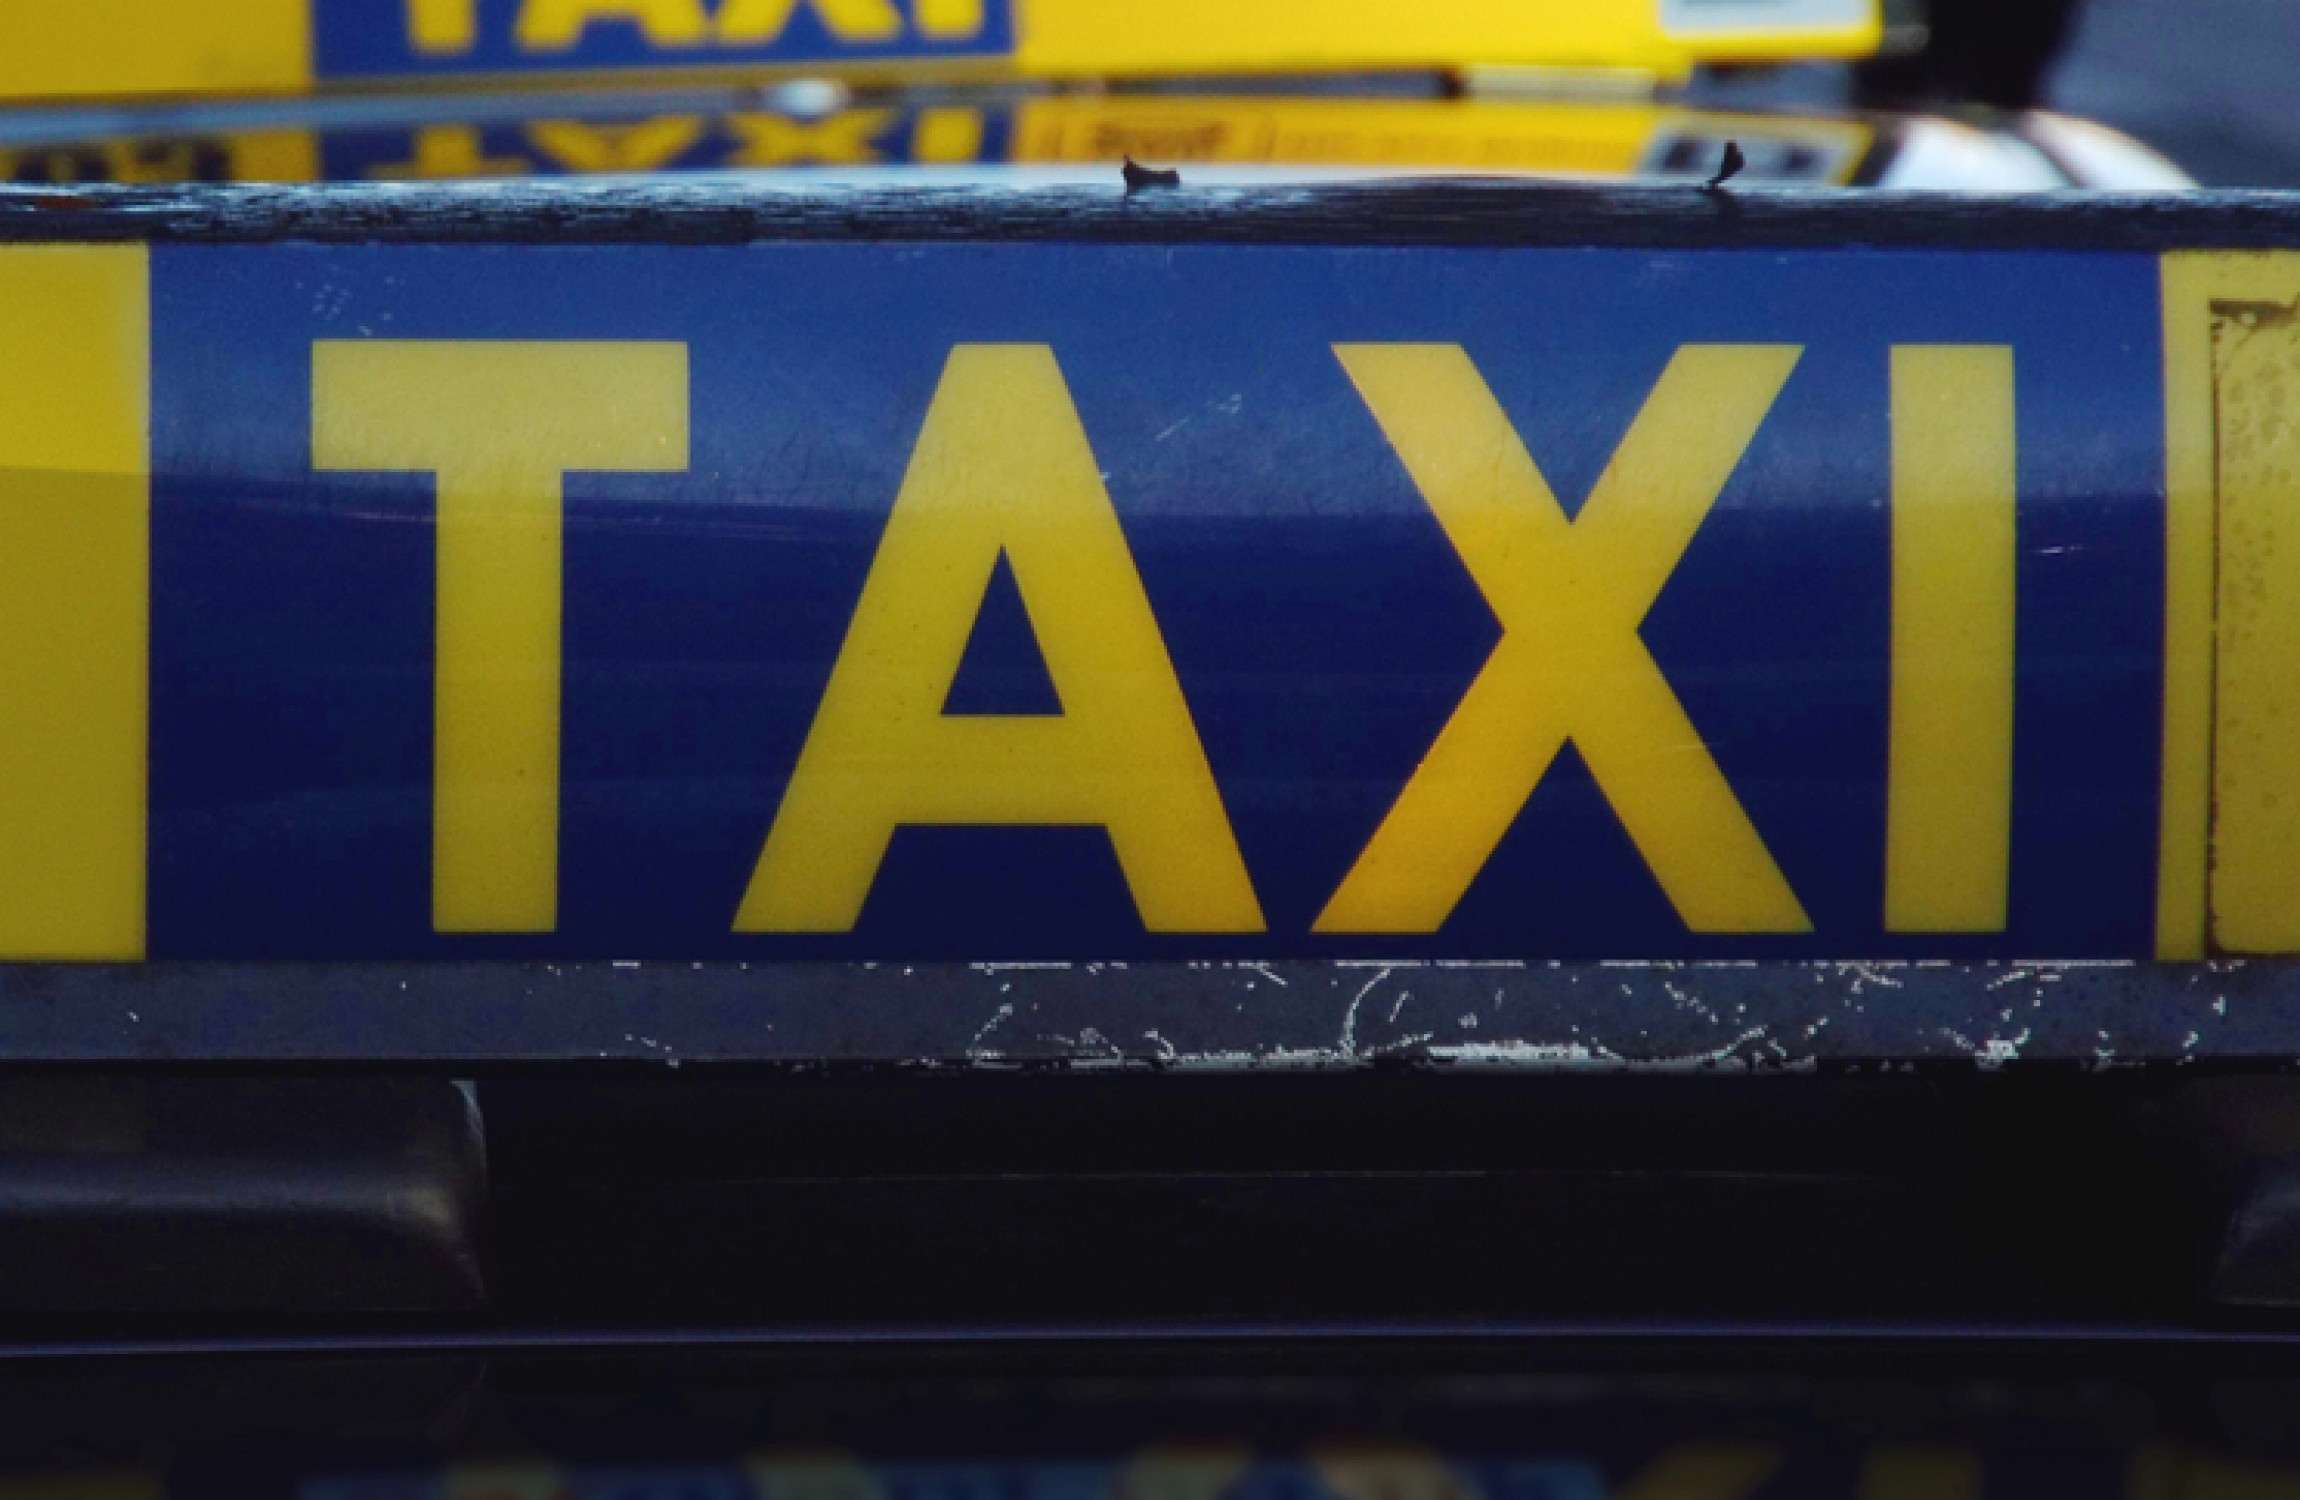 an appalling case': bus driver attacked taxi driver in fight over